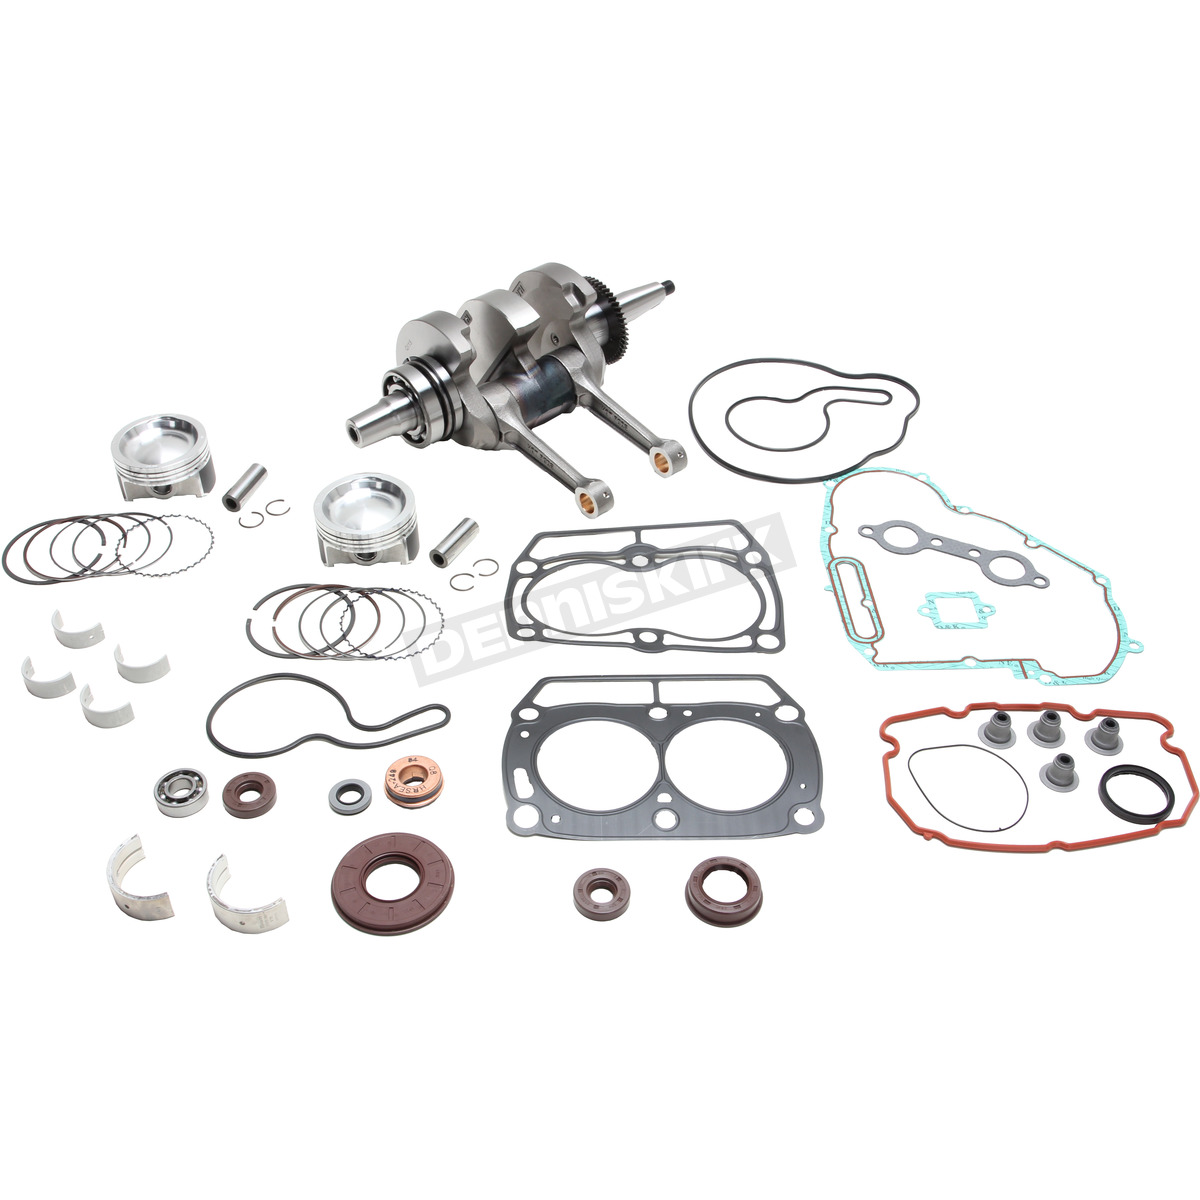 Wrench Rabbit Complete Engine Rebuild Kit In A Box 80mm